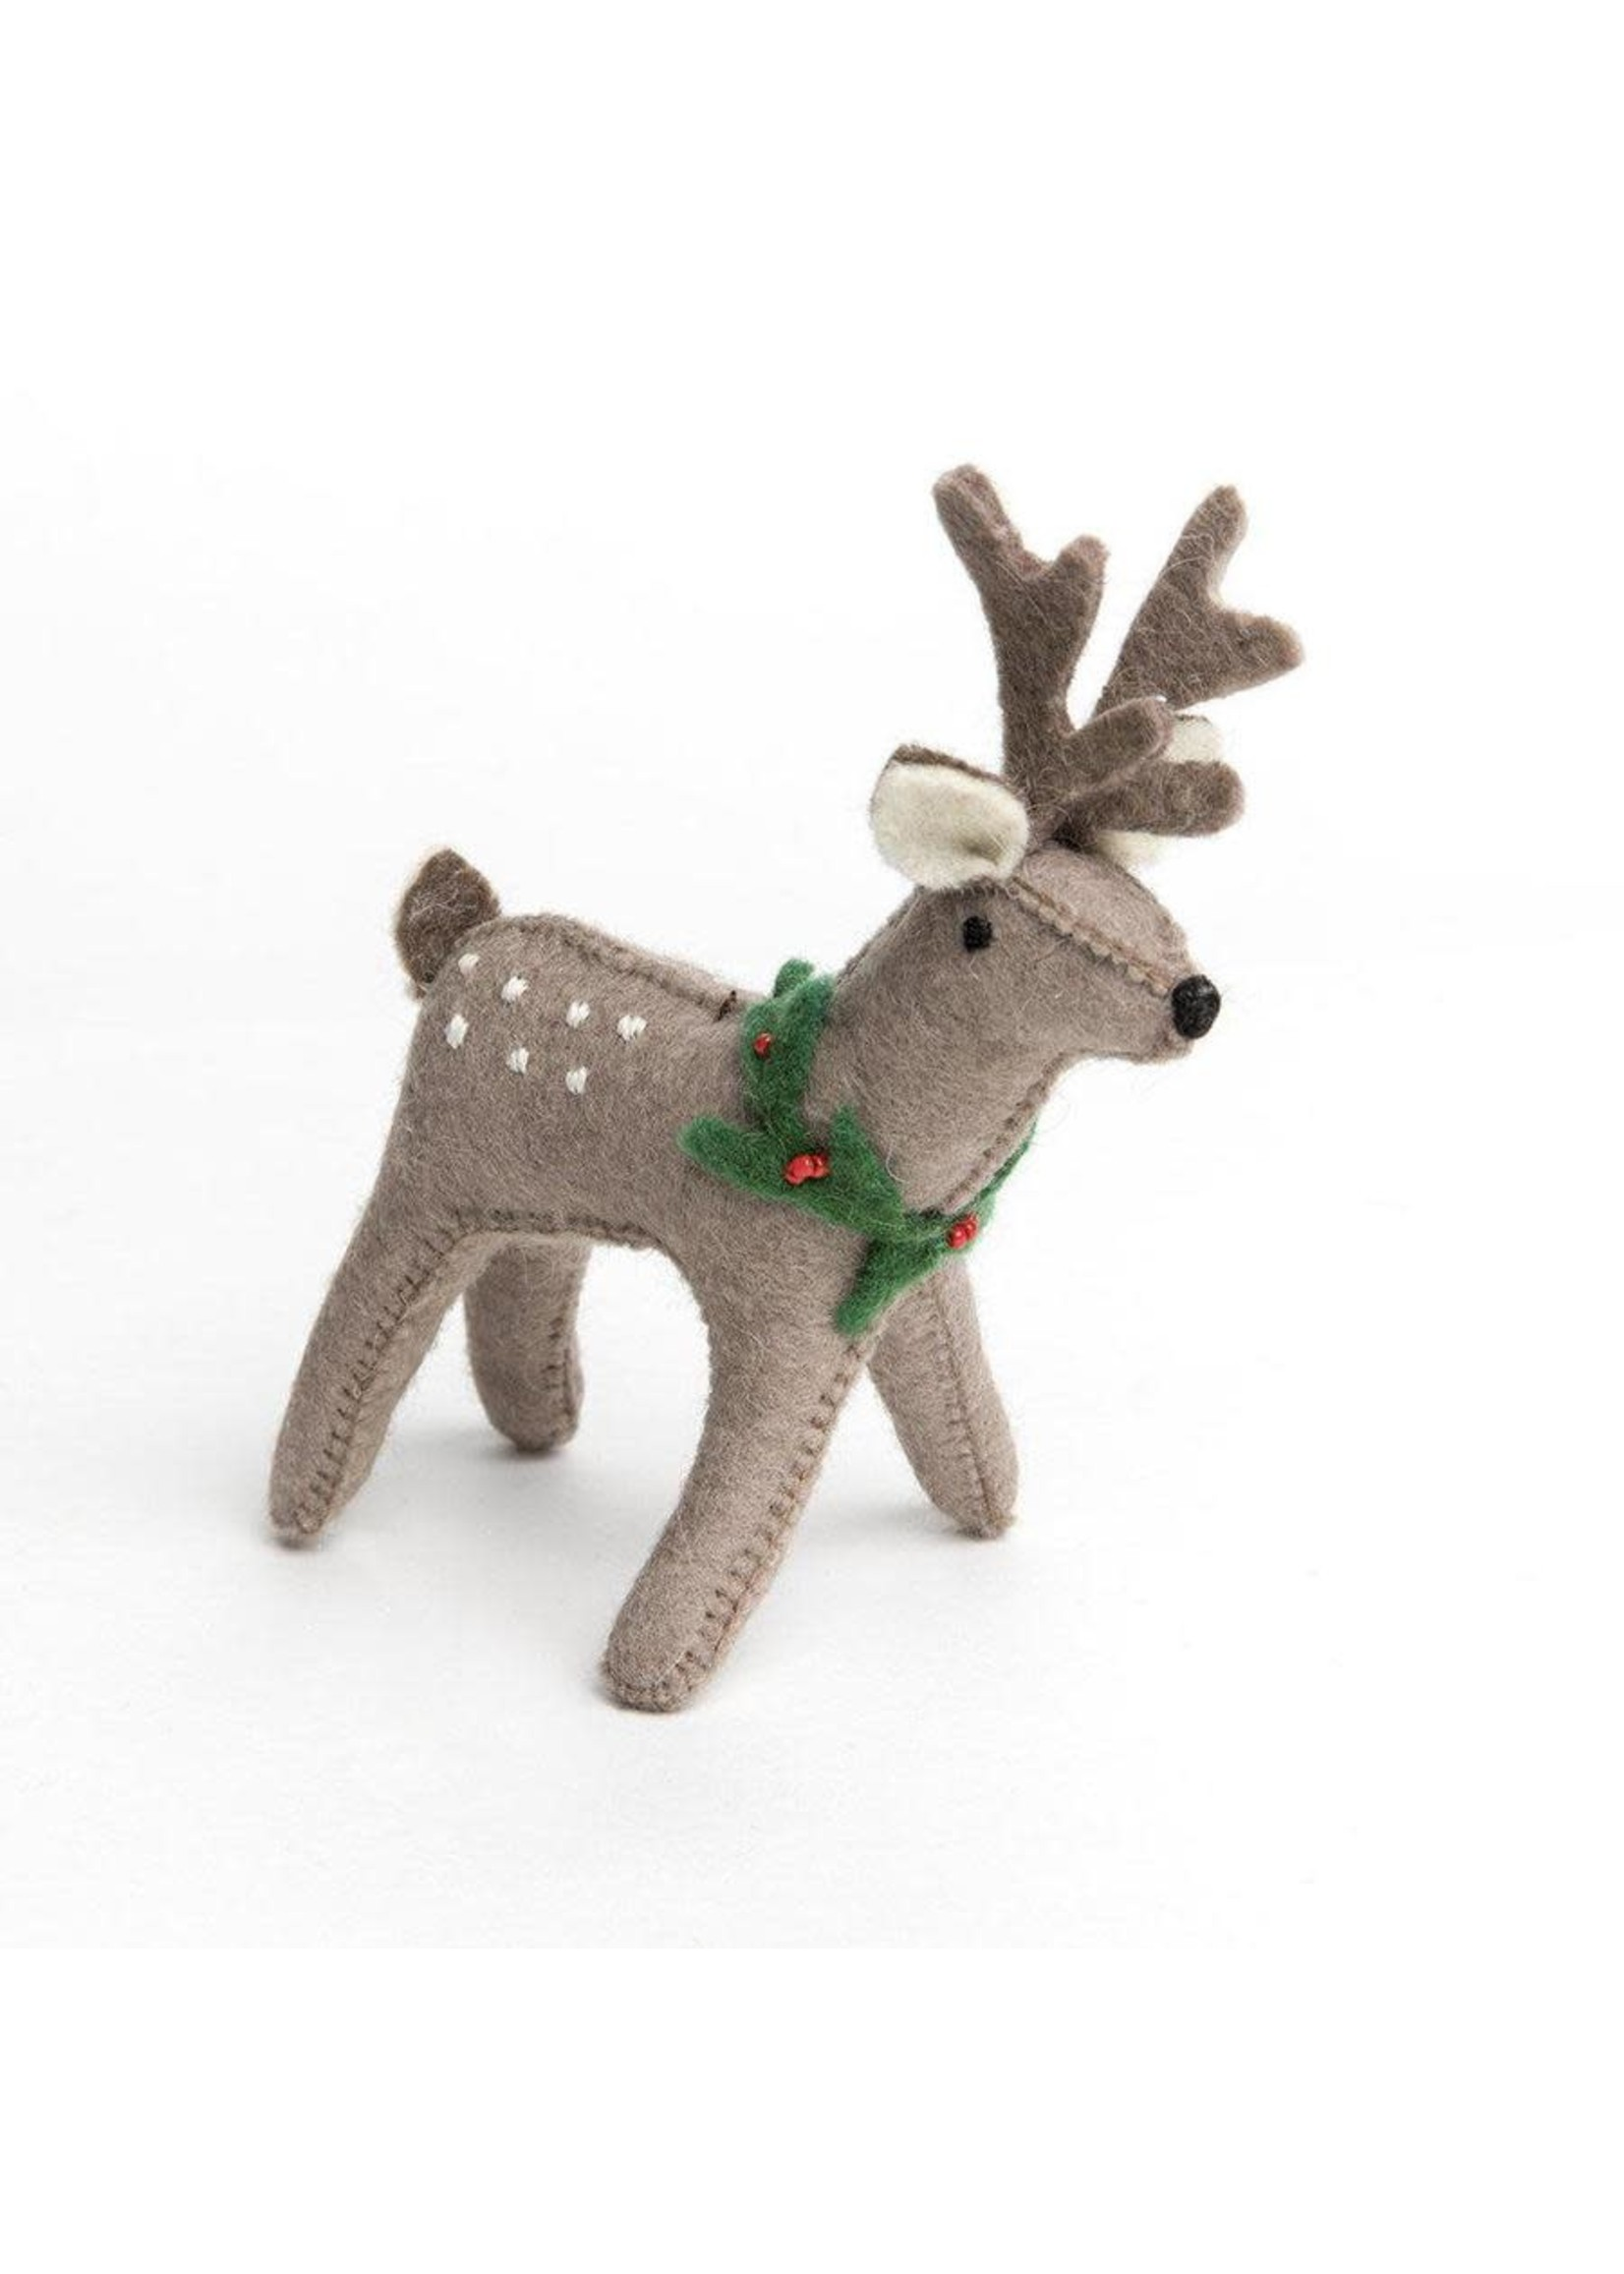 Ornament - Winter Bambi - Brown Deer with Dots